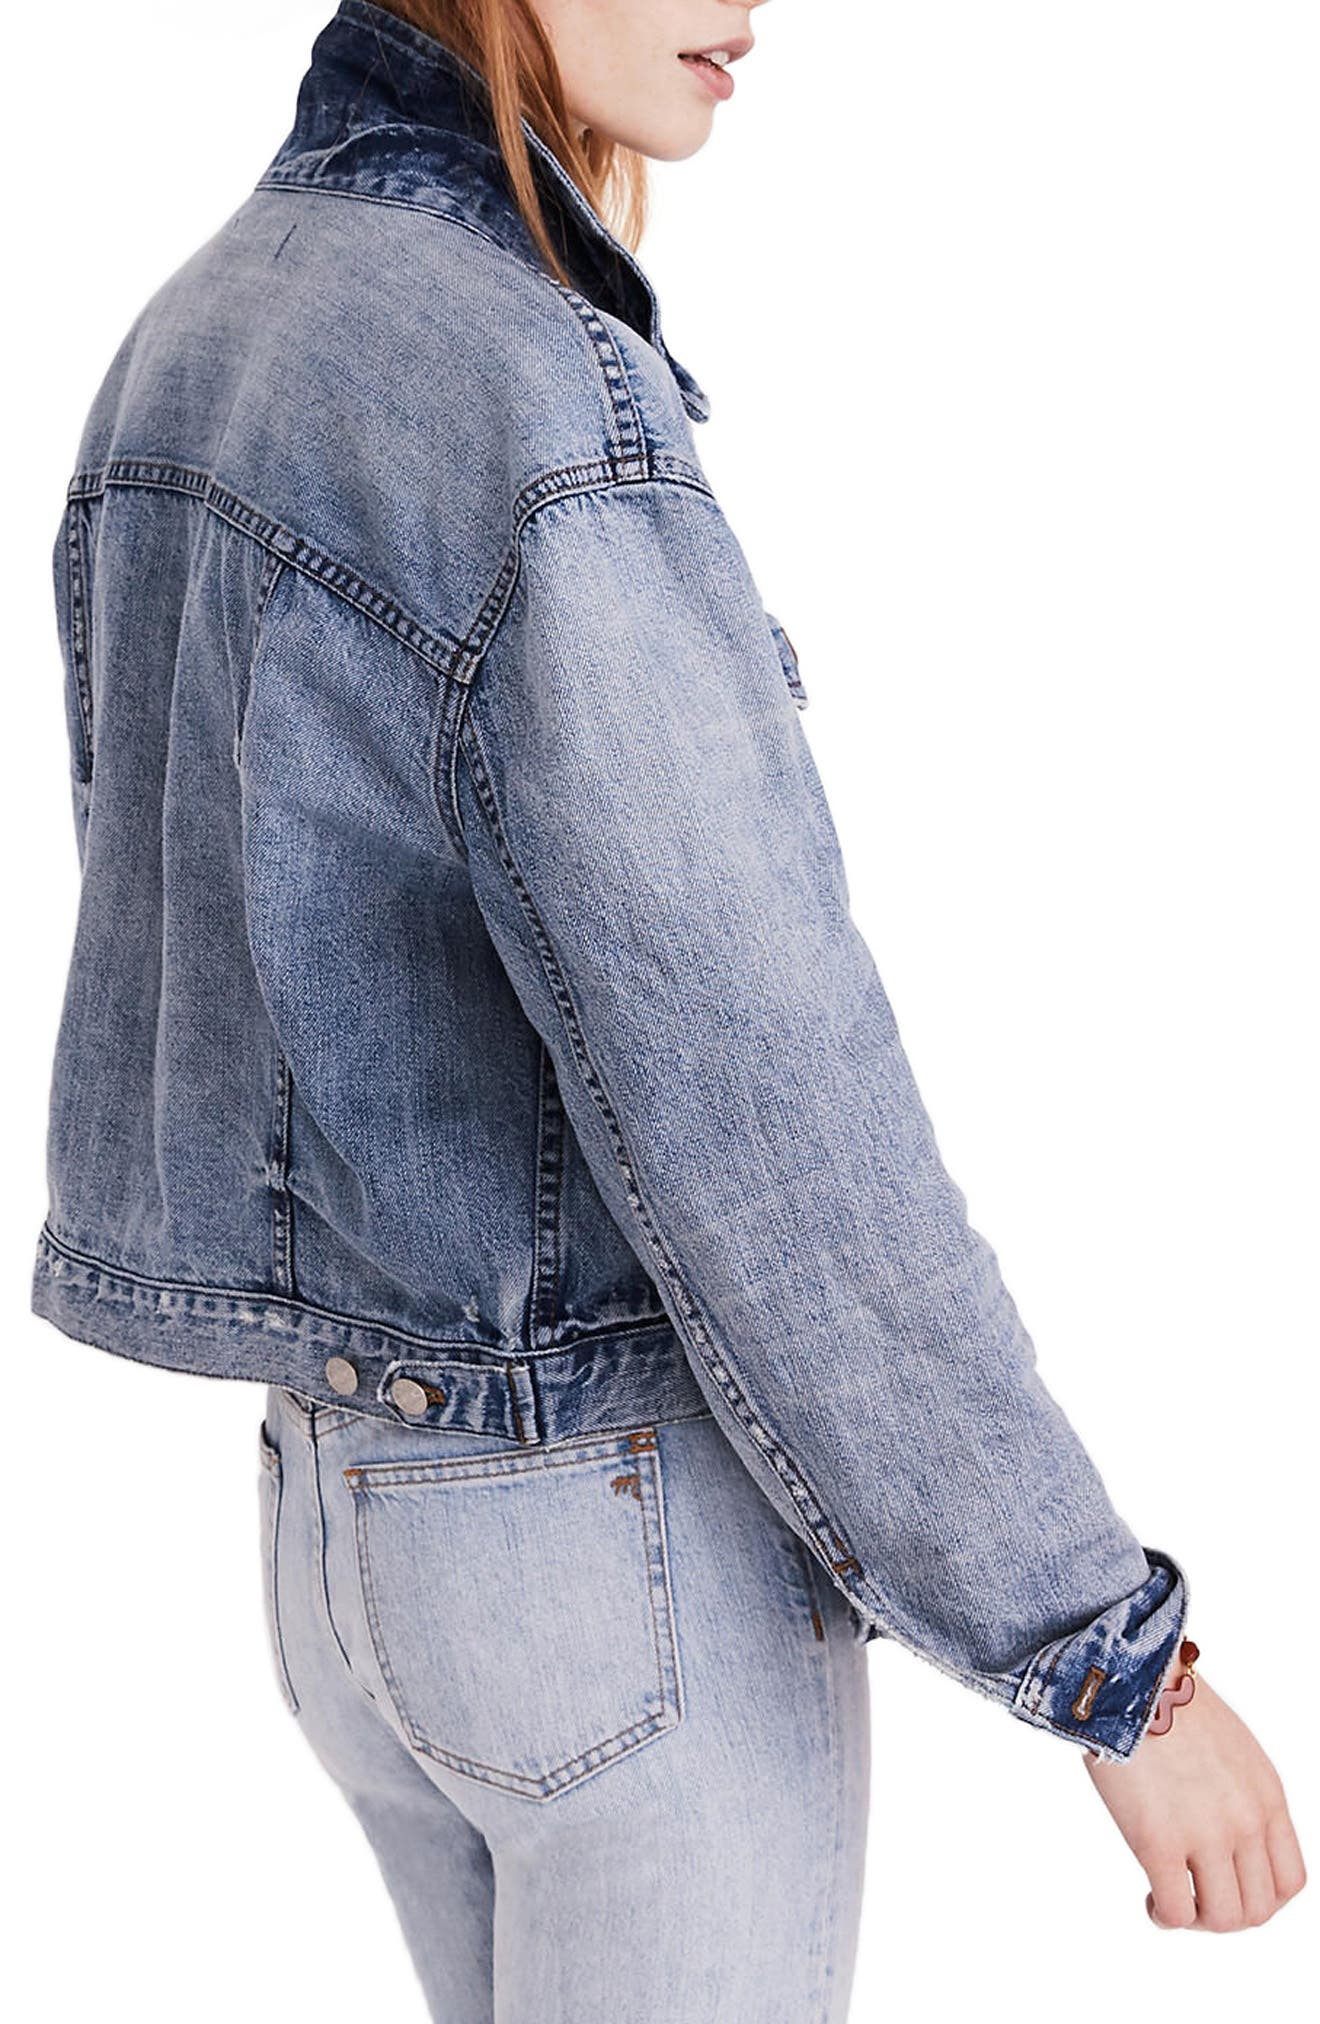 MADEWELL,                             Boxy Crop Jean Jacket,                             Alternate thumbnail 3, color,                             400